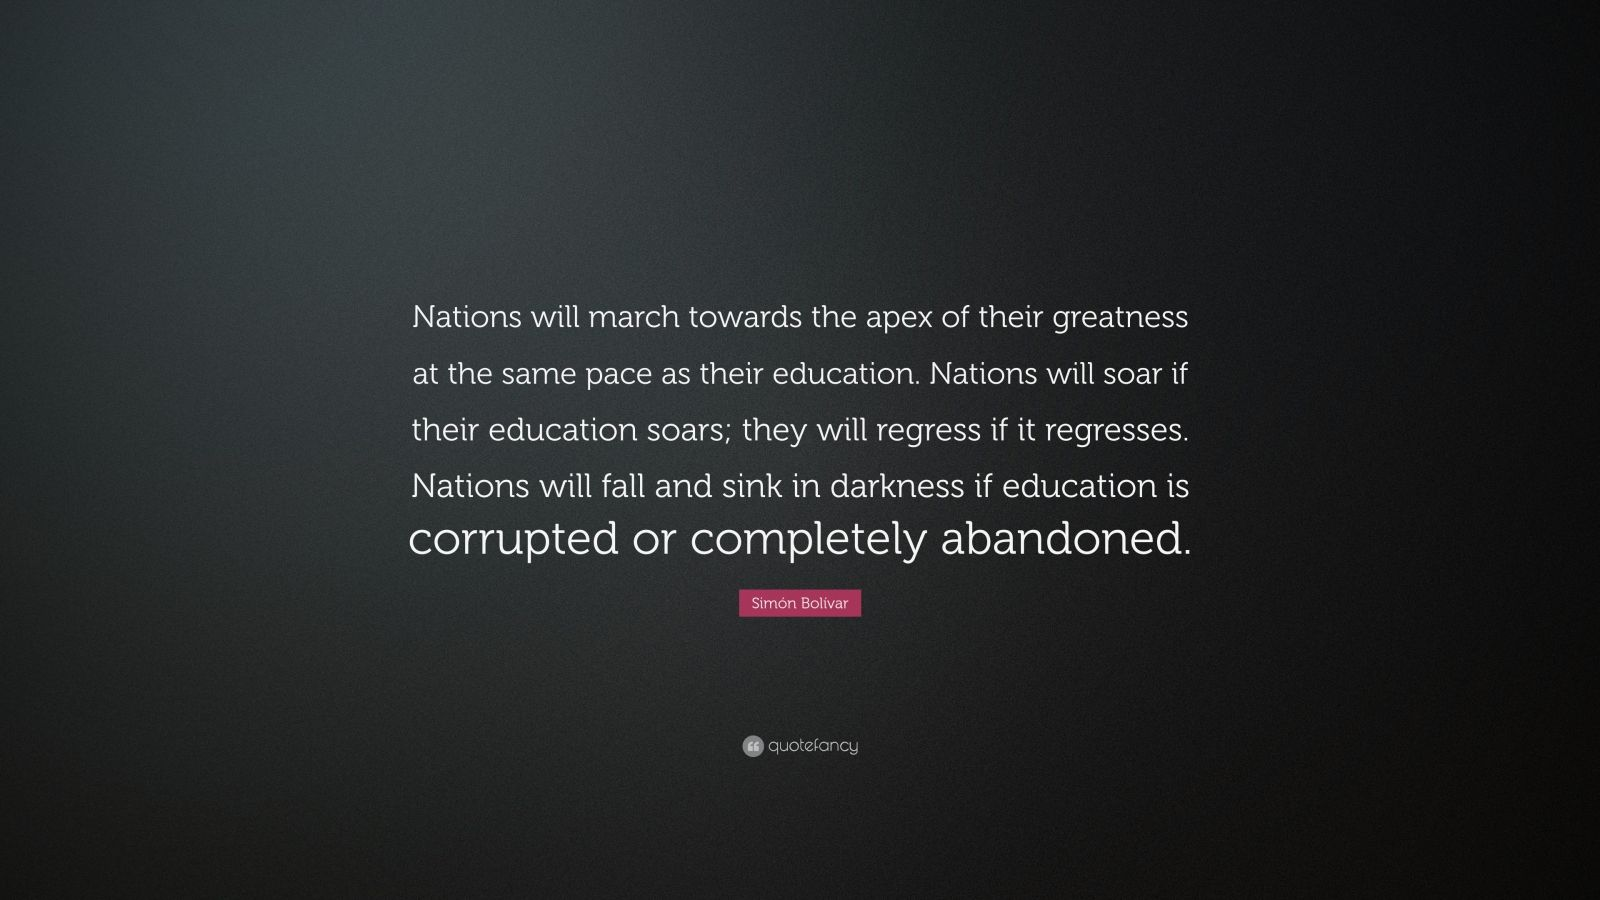 """Simón Bolívar Quote: """"Nations will march towards the apex of their greatness at the same pace as their education. Nations will soar if their education soars; they will regress if it regresses. Nations will fall and sink in darkness if education is corrupted or completely abandoned."""""""